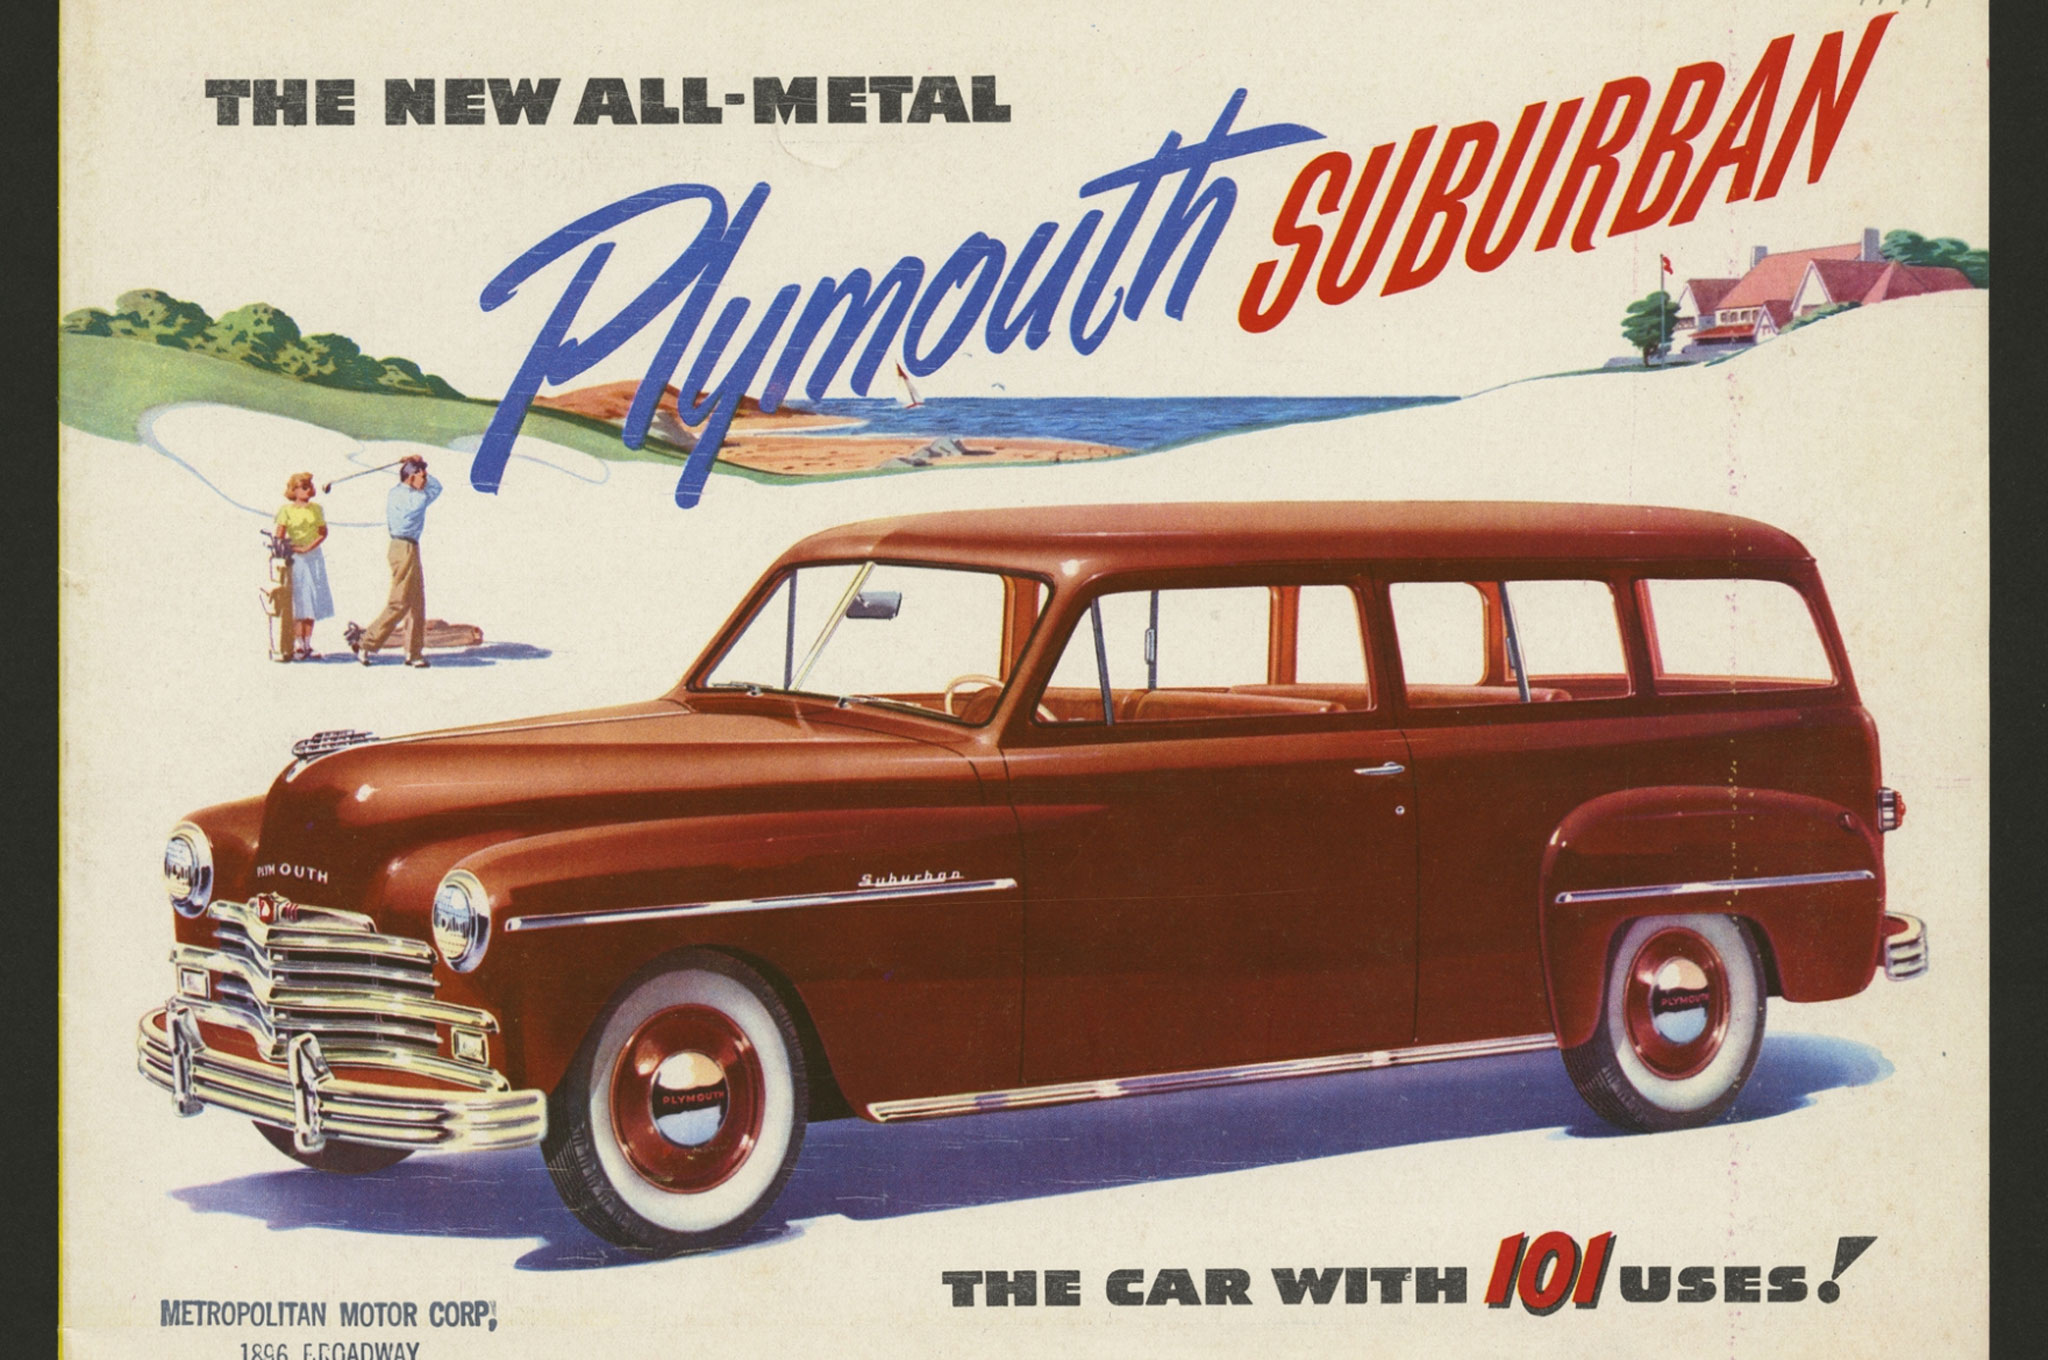 Vintage Ads: The 1949 Plymouth Suburban and its 101 Uses - Motor Trend